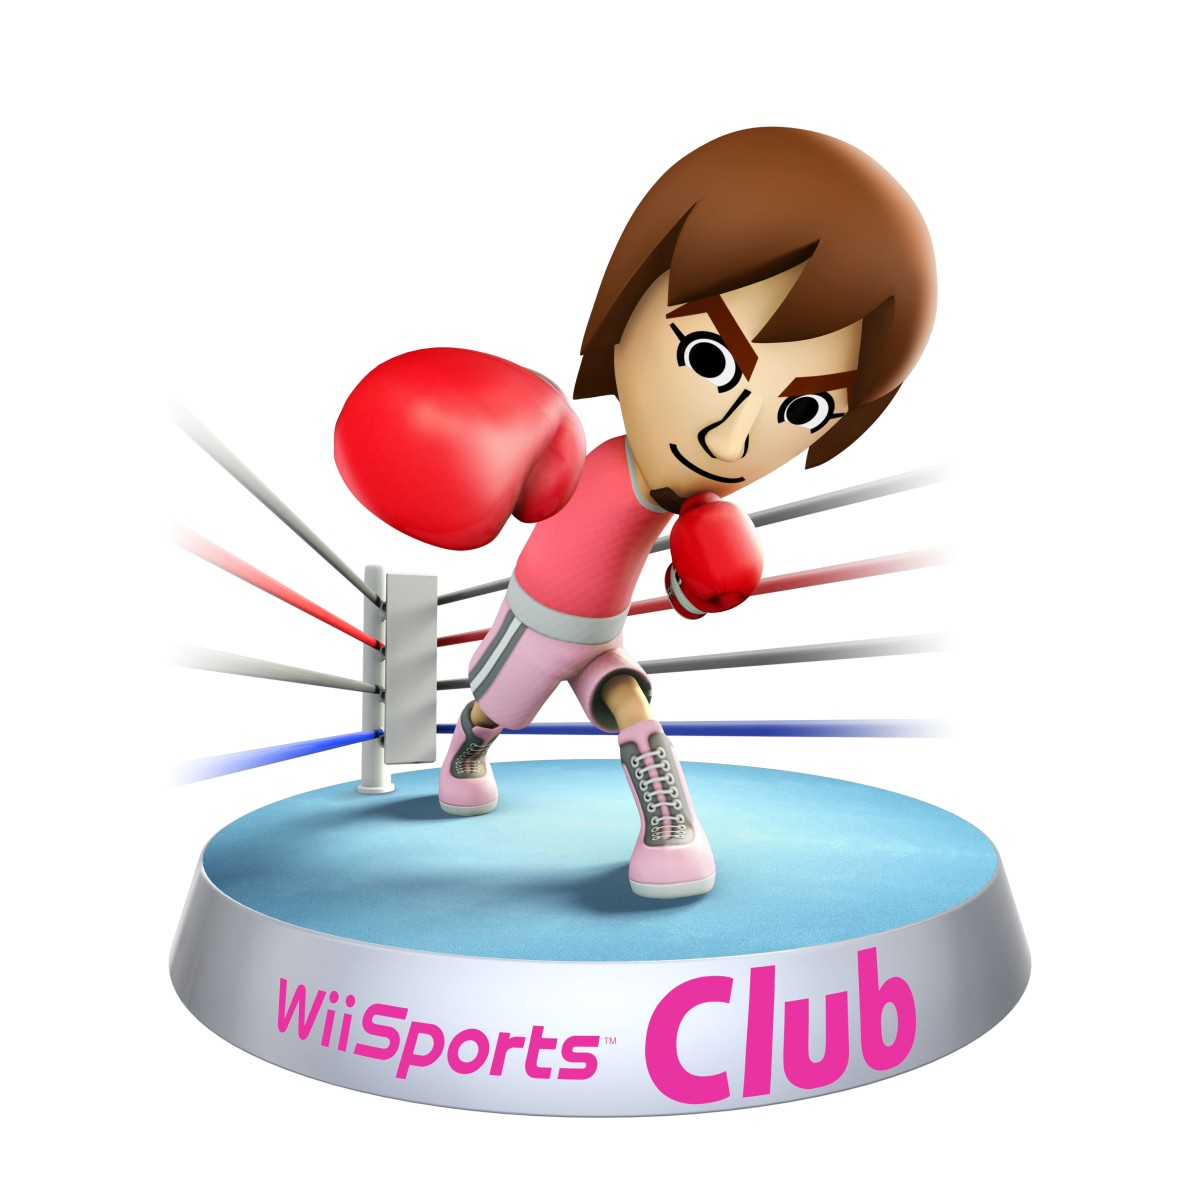 Wii Sports Club For Wii U Coming To North American Retail Stores On July25th